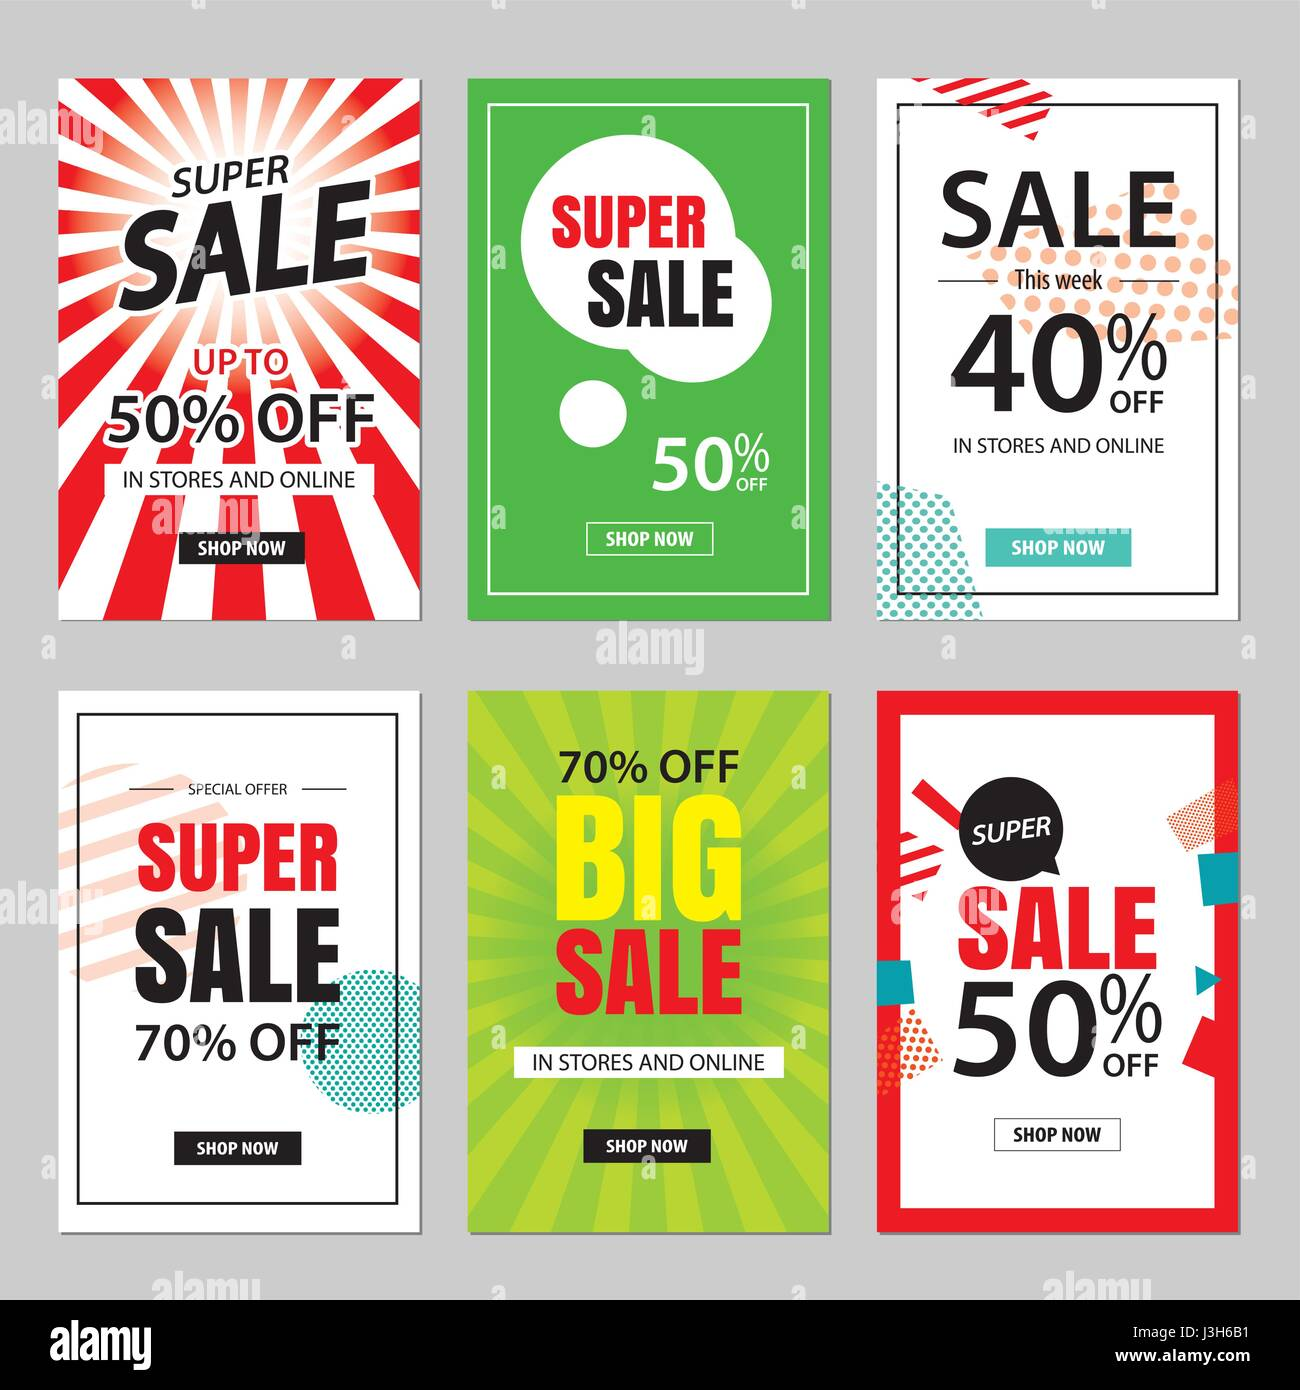 Set of sale website banner templatescial media banners for online set of sale website banner templatescial media banners for online shopping vector illustrations for posters email and newsletter designs ads pr maxwellsz